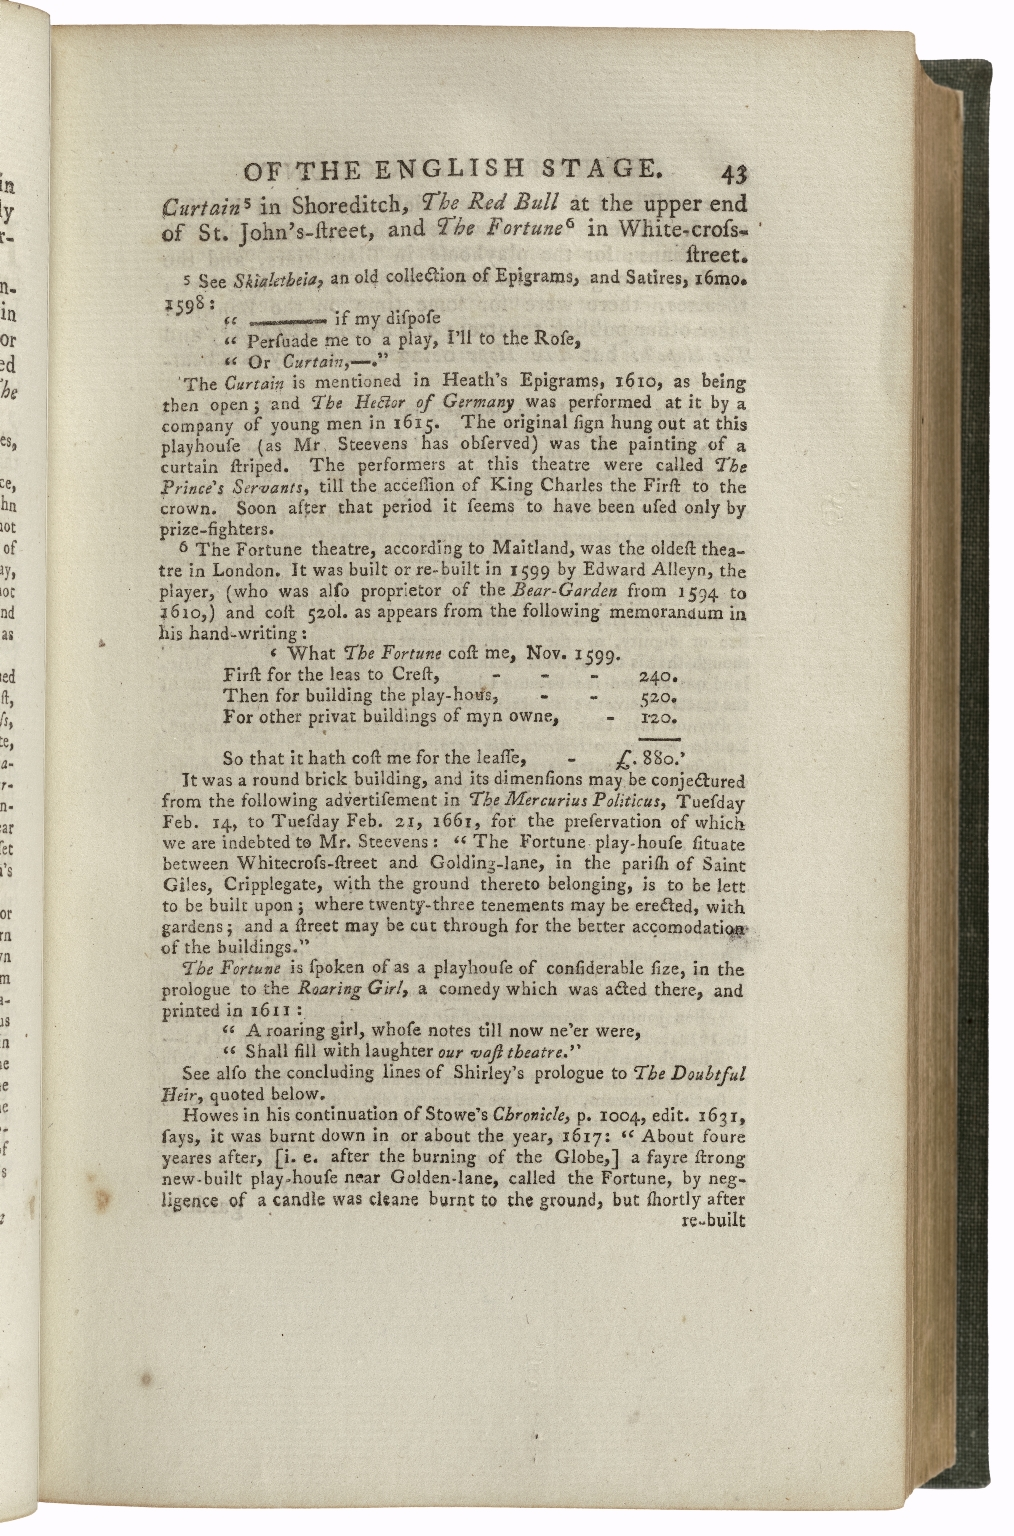 [Works. 1790. Rivington] The plays and poems of William Shakspeare : in ten volumes : collated verbatim with the most authentick copies, and revised, with the corrections and illustrations of various commentators, to which are added, an essay on the chronological order of his plays; an essay relative to Shakspeare and Jonson [sic]; a dissertation on the three parts of King Henry VI; an historical account of the English stage; and notes / by Edmond Malone.